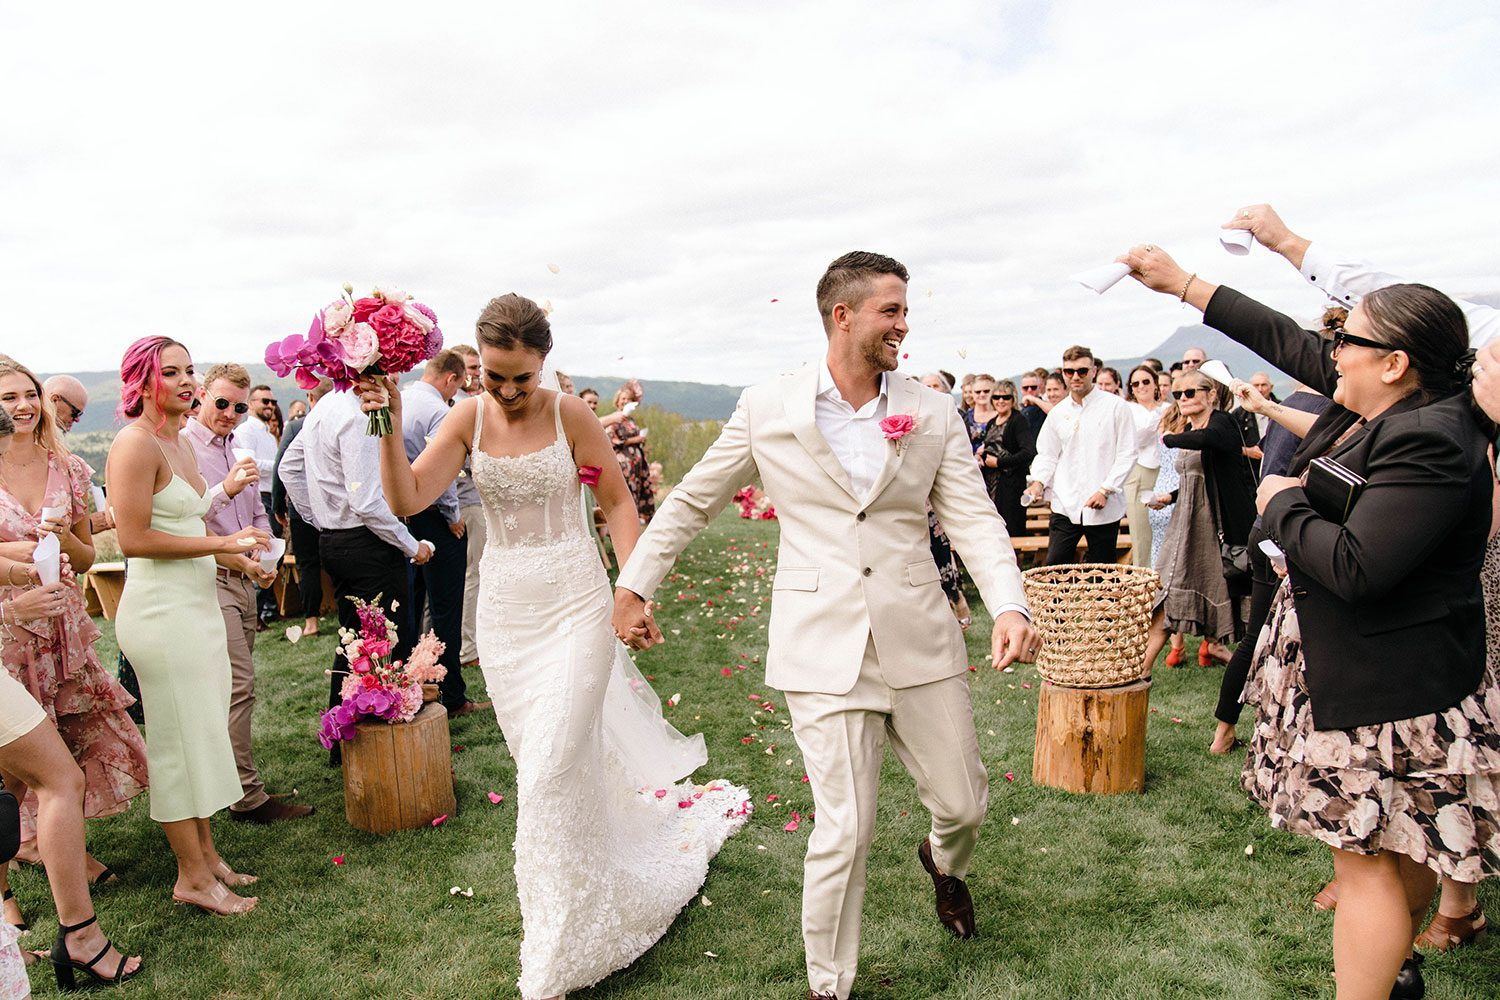 Bride wears bespoke E'More lace gown with boned bodice with hand beaded flower applique and full lace train by Auckland wedding dress maker Vinka designs - just married